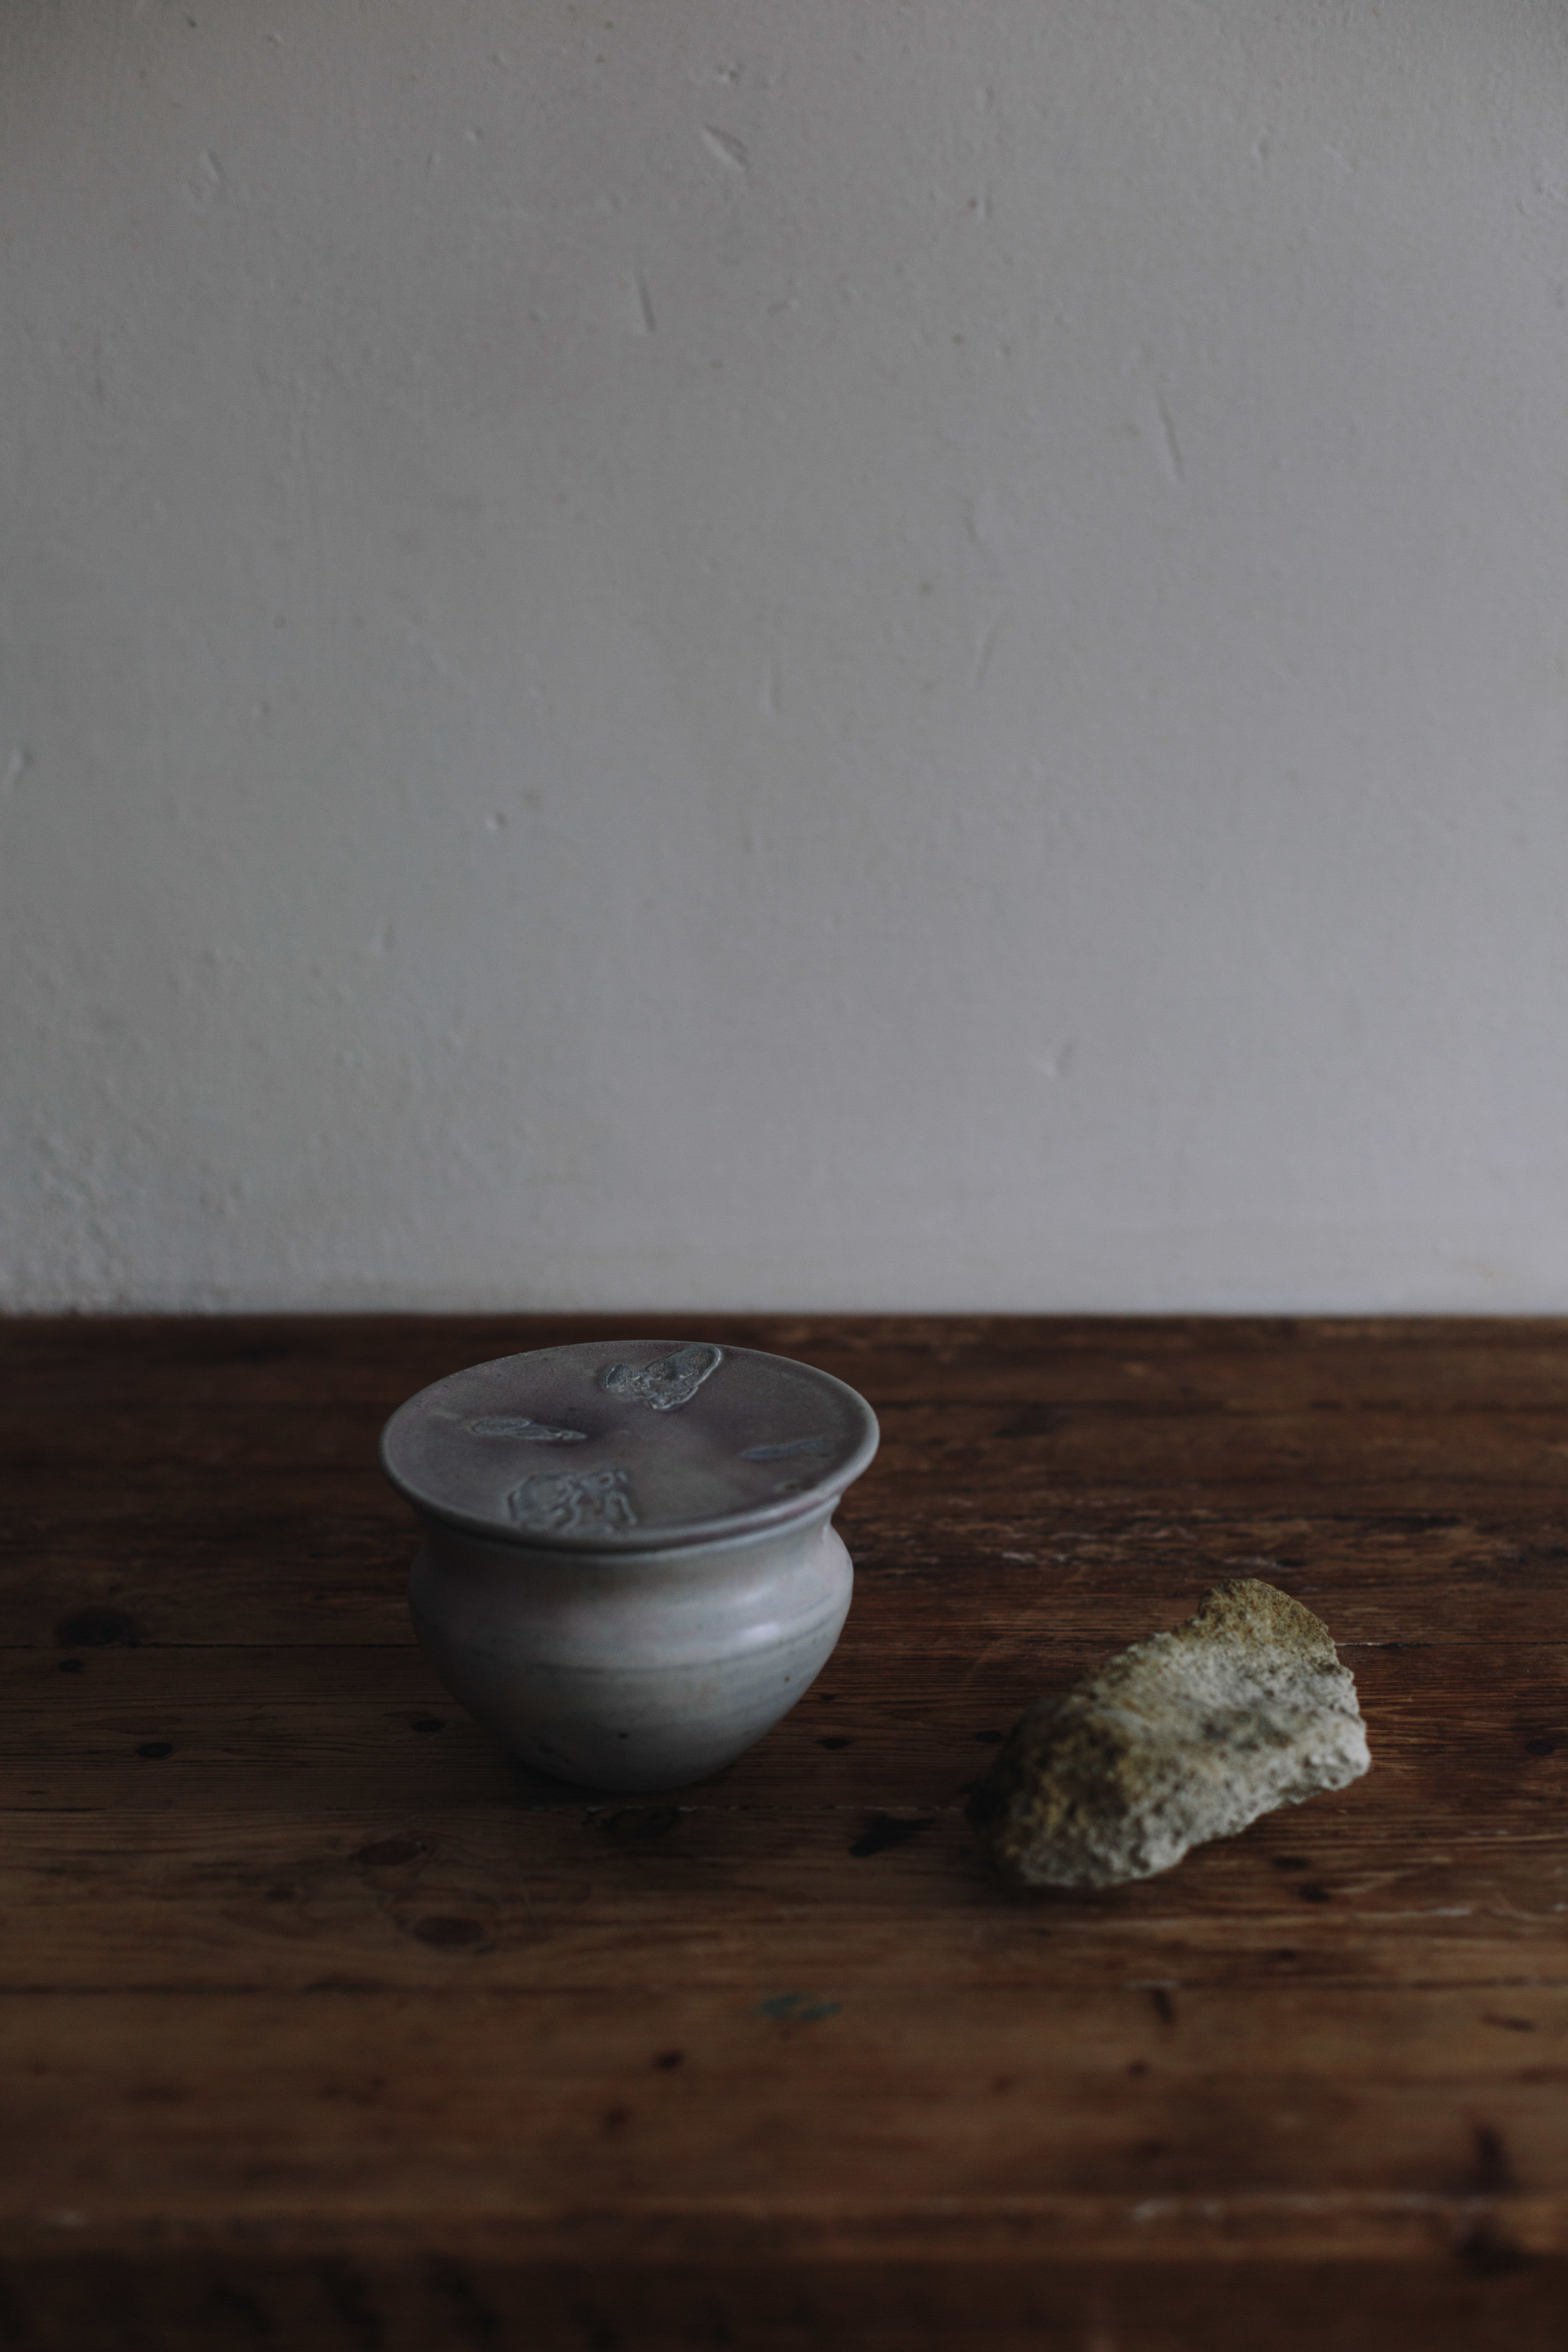 Copy of Sosban _ The Old Butchers - Lidded Pot - Mussel Shell Glaze on Stoneware - £95.00 - Maria Bell Photography.jpg